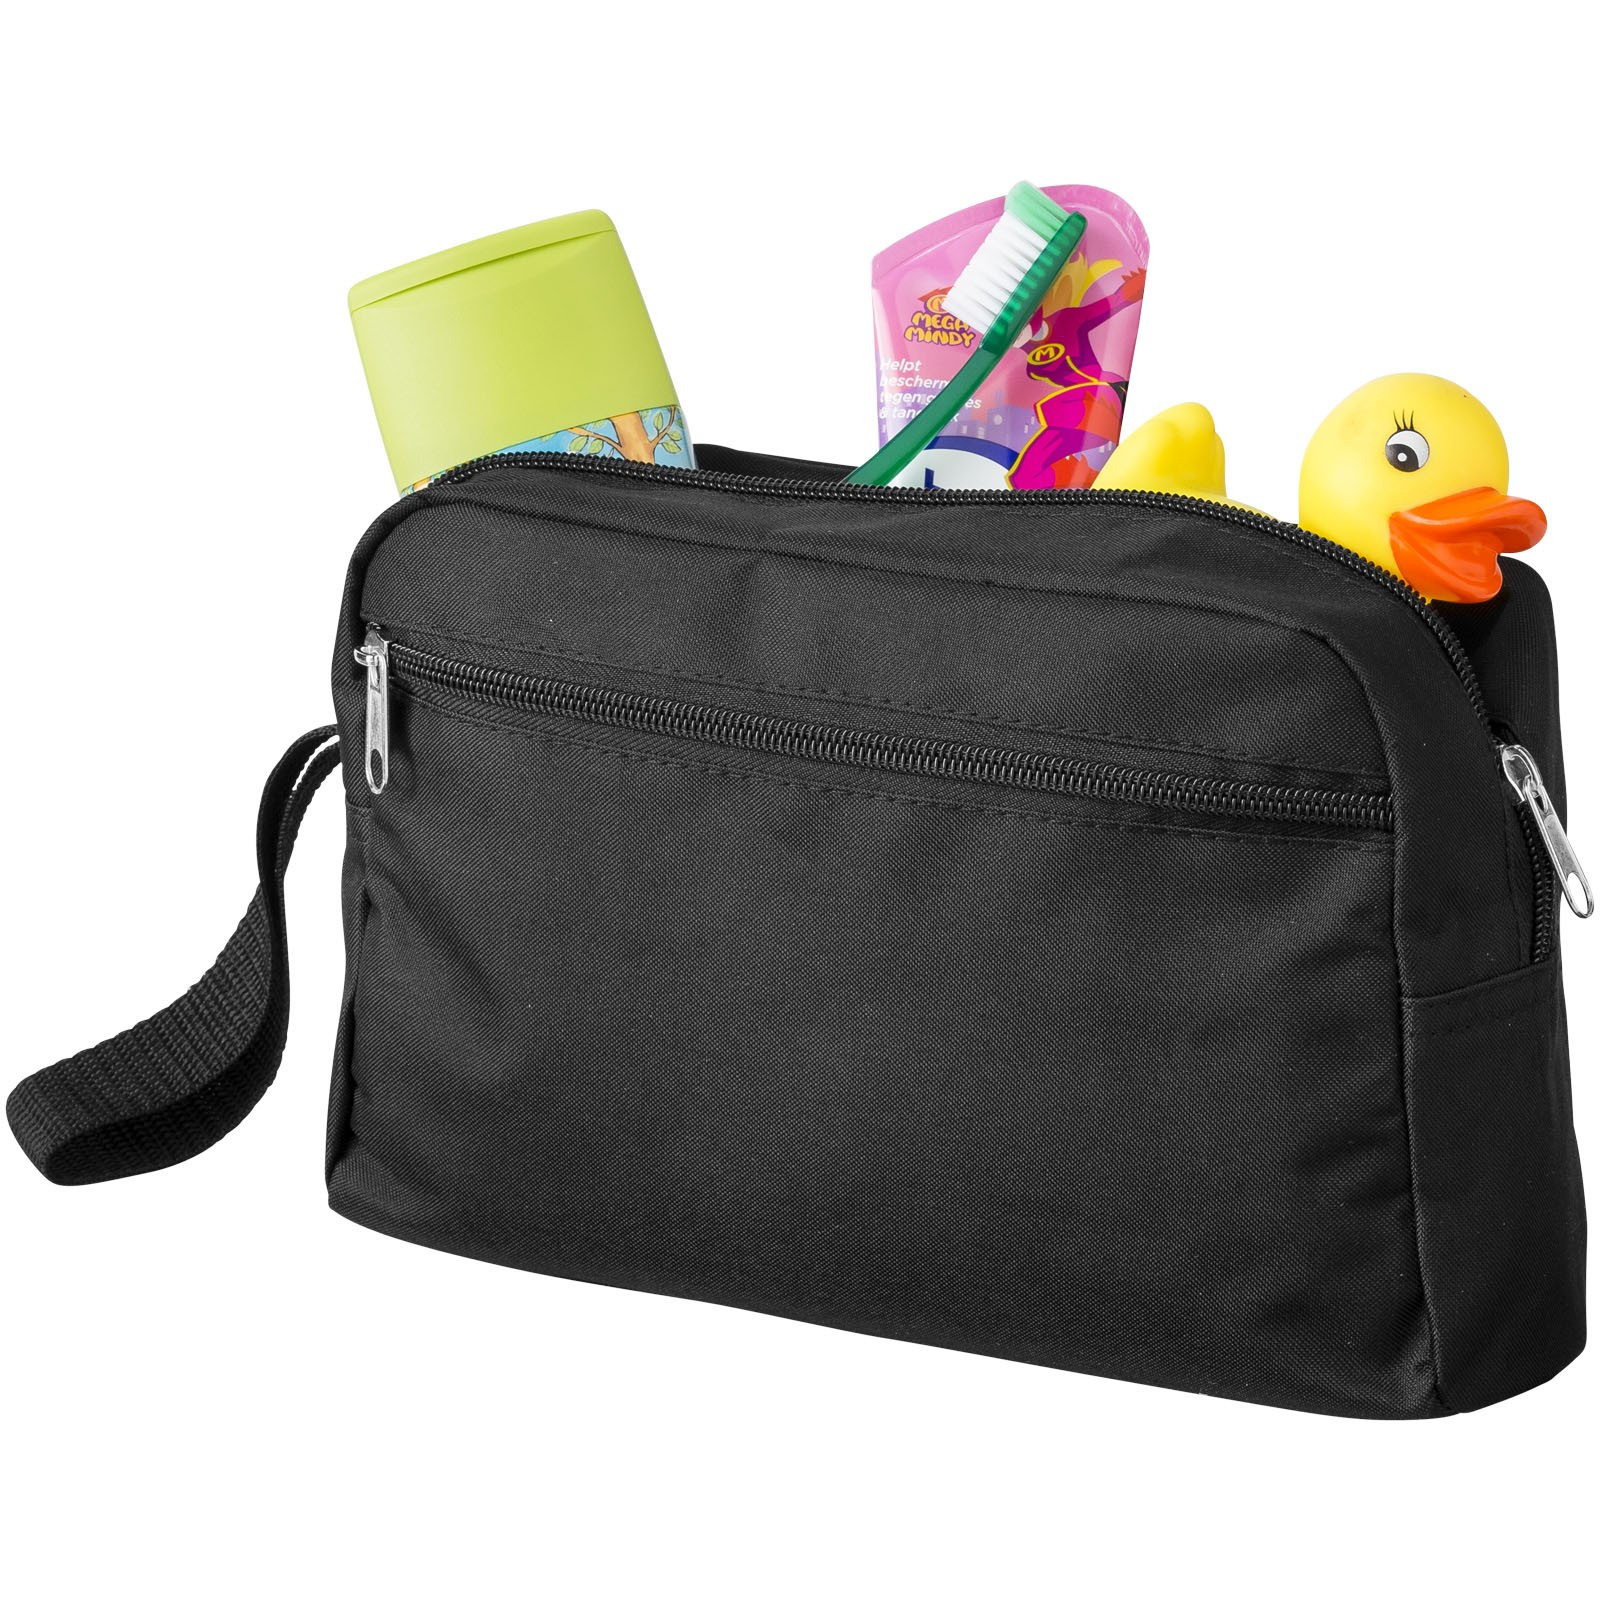 Transit toiletry bag - Solid black